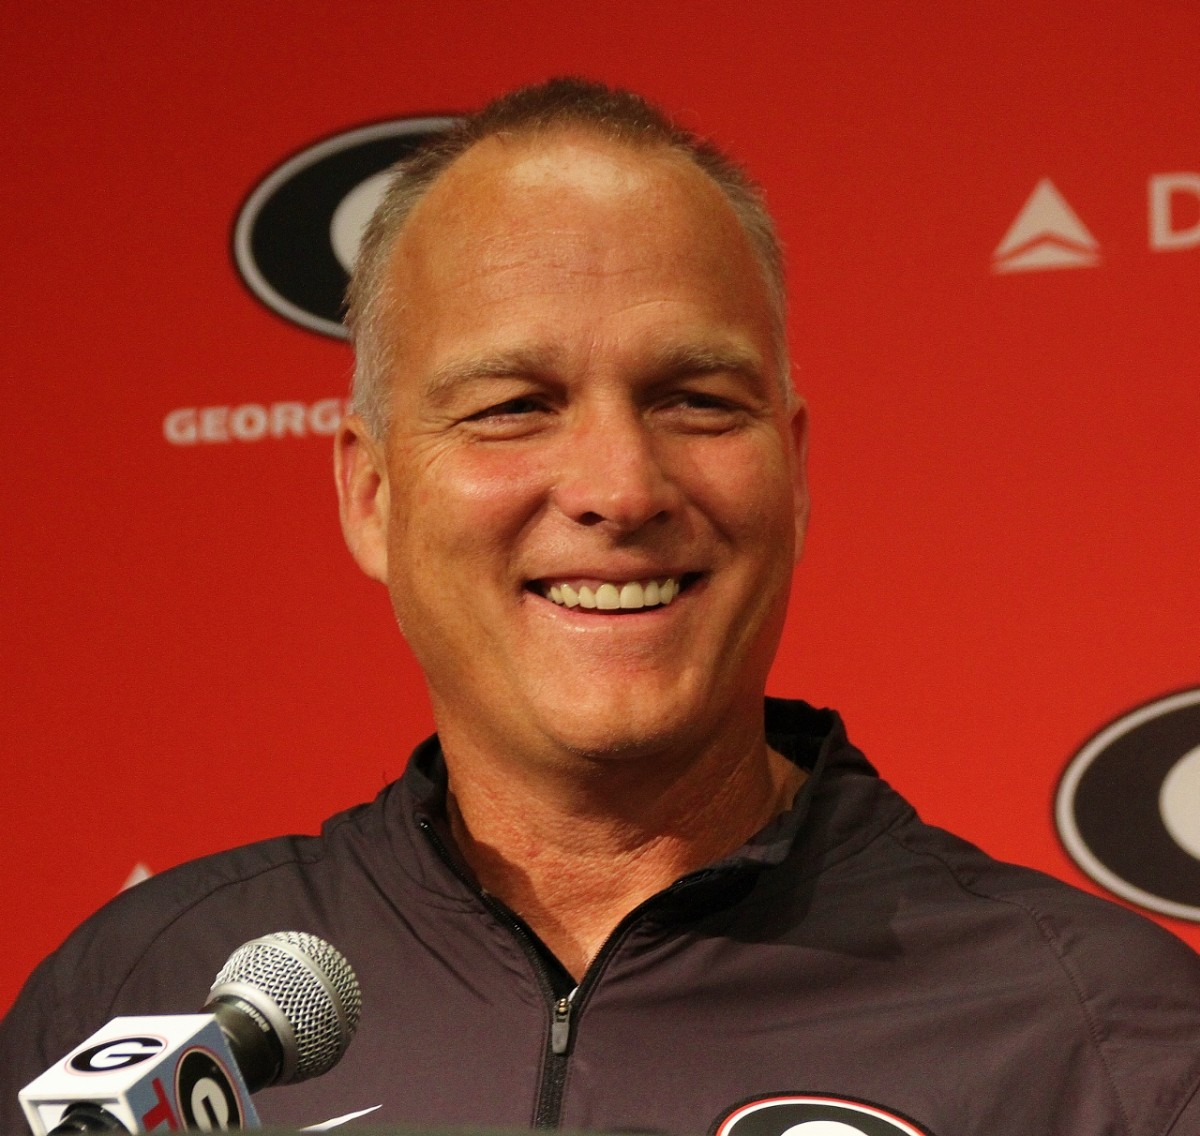 CMR happy with the win over the HBC